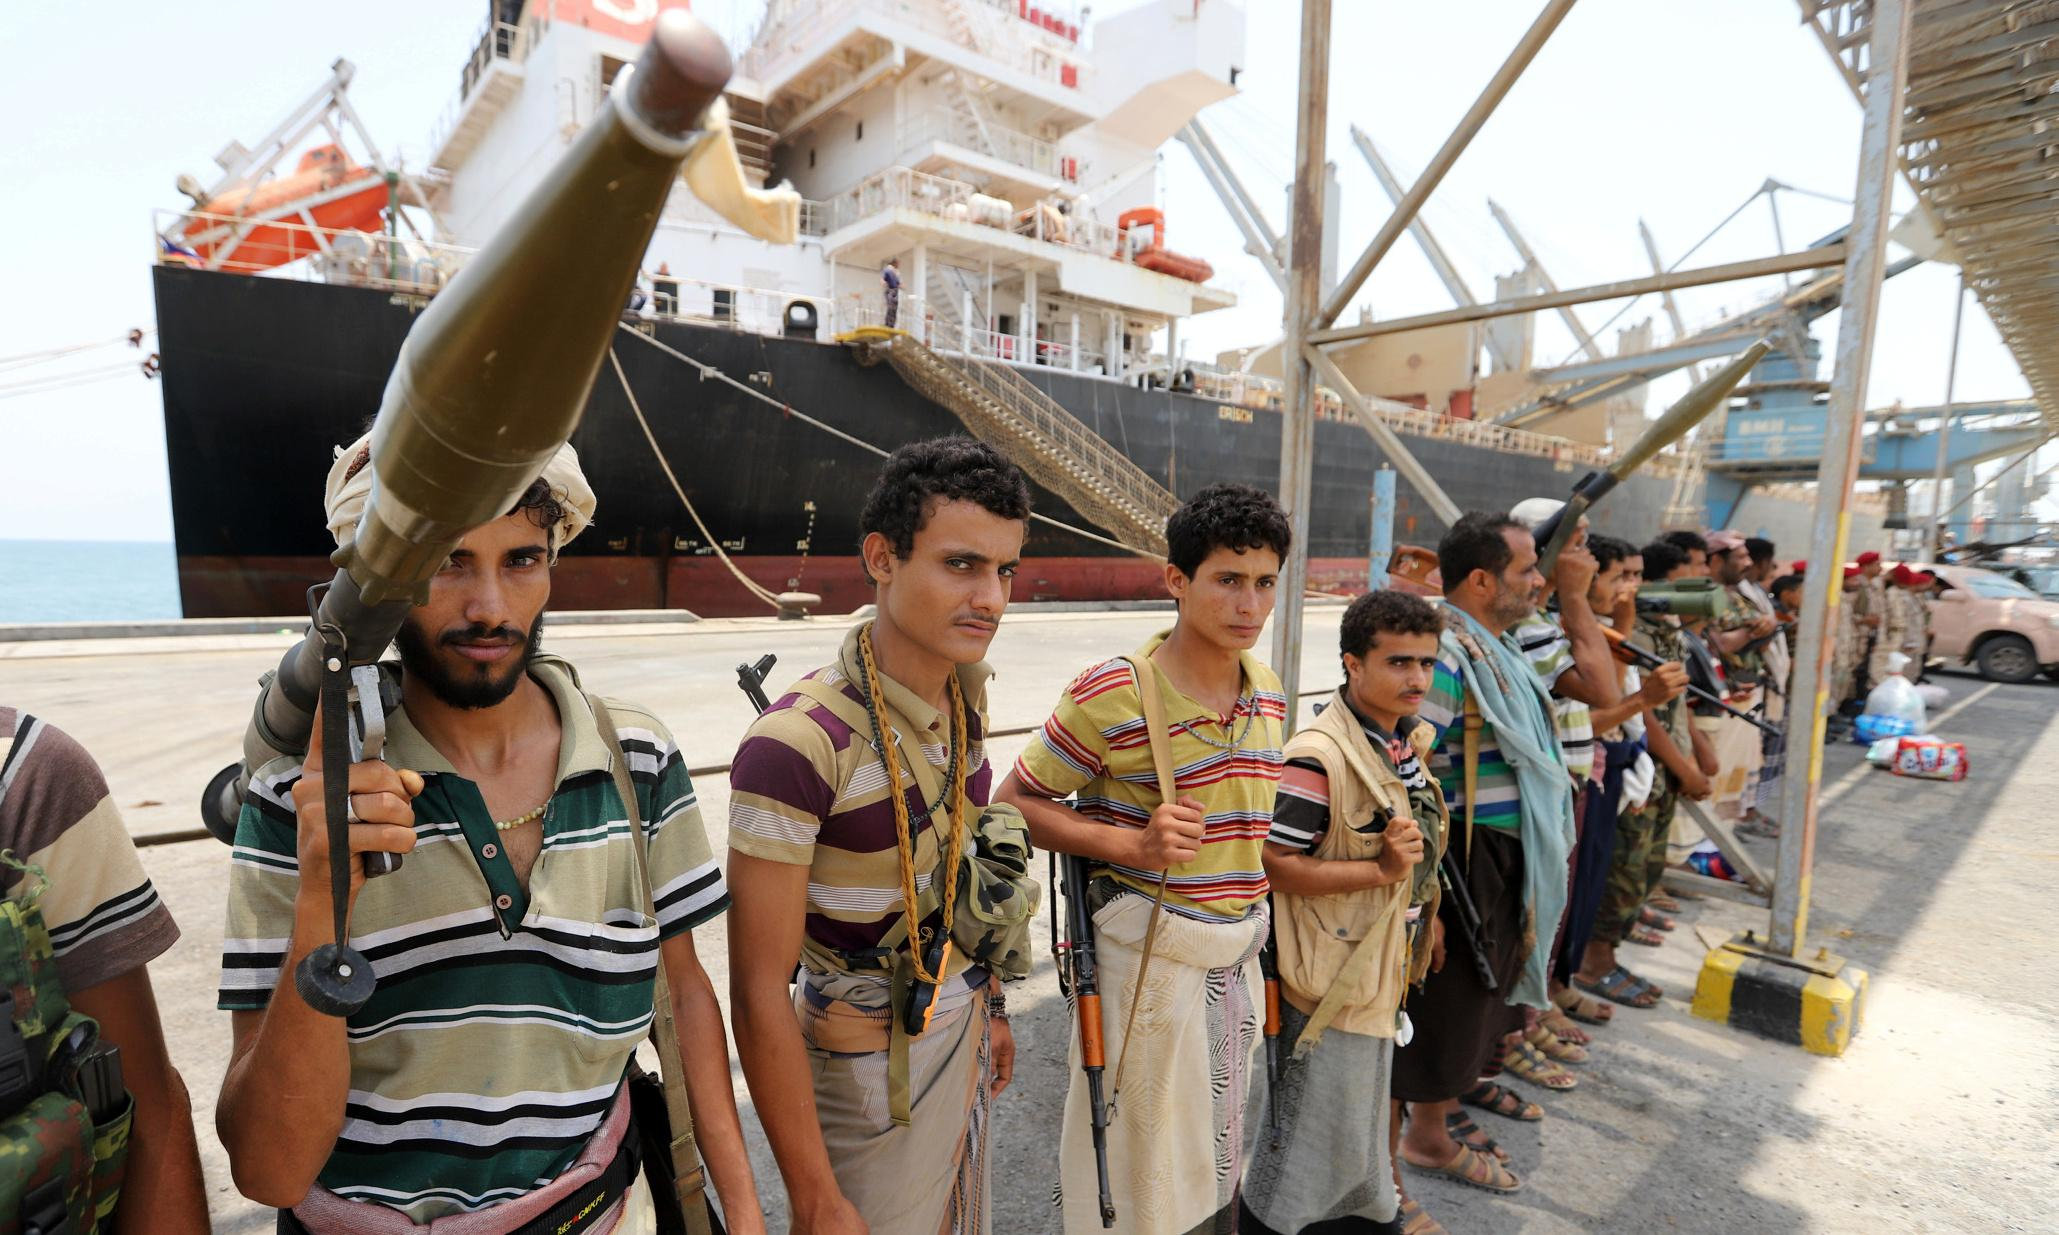 Yemen: Houthis' port withdrawal 'going according to plan', says UN